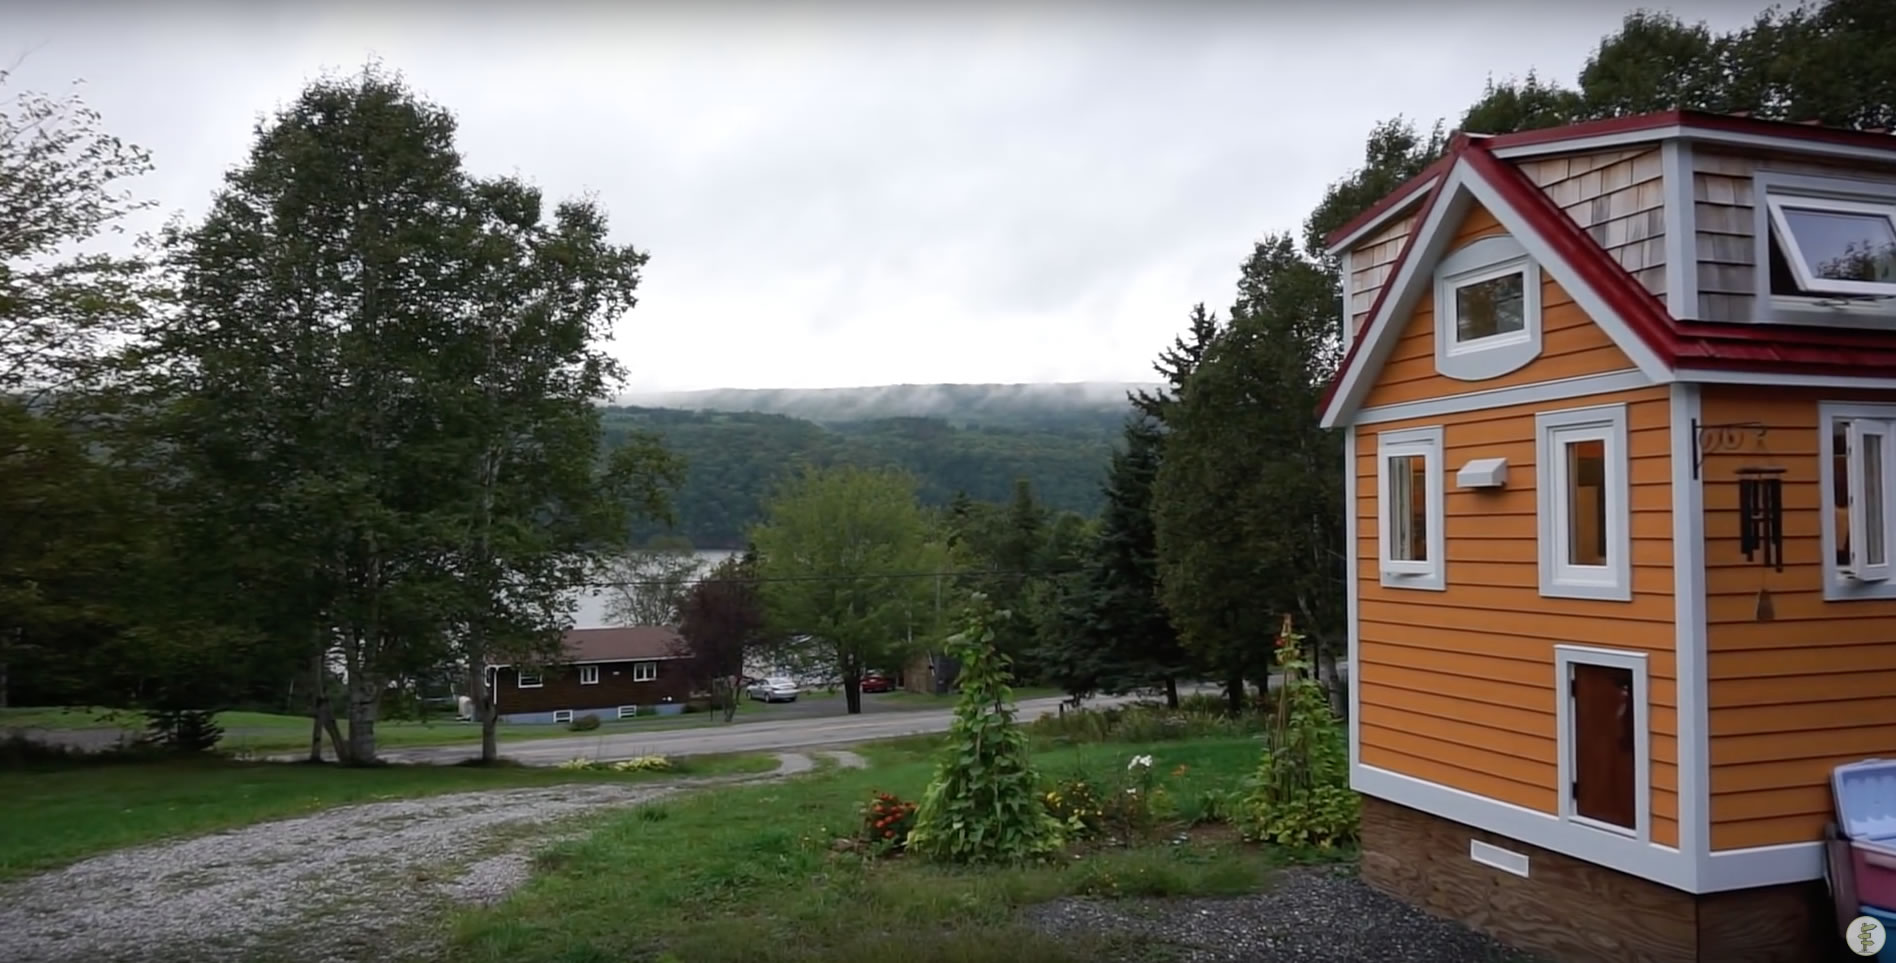 View - Challenges & Benefits of Tiny House Living - Couple Shares Experience